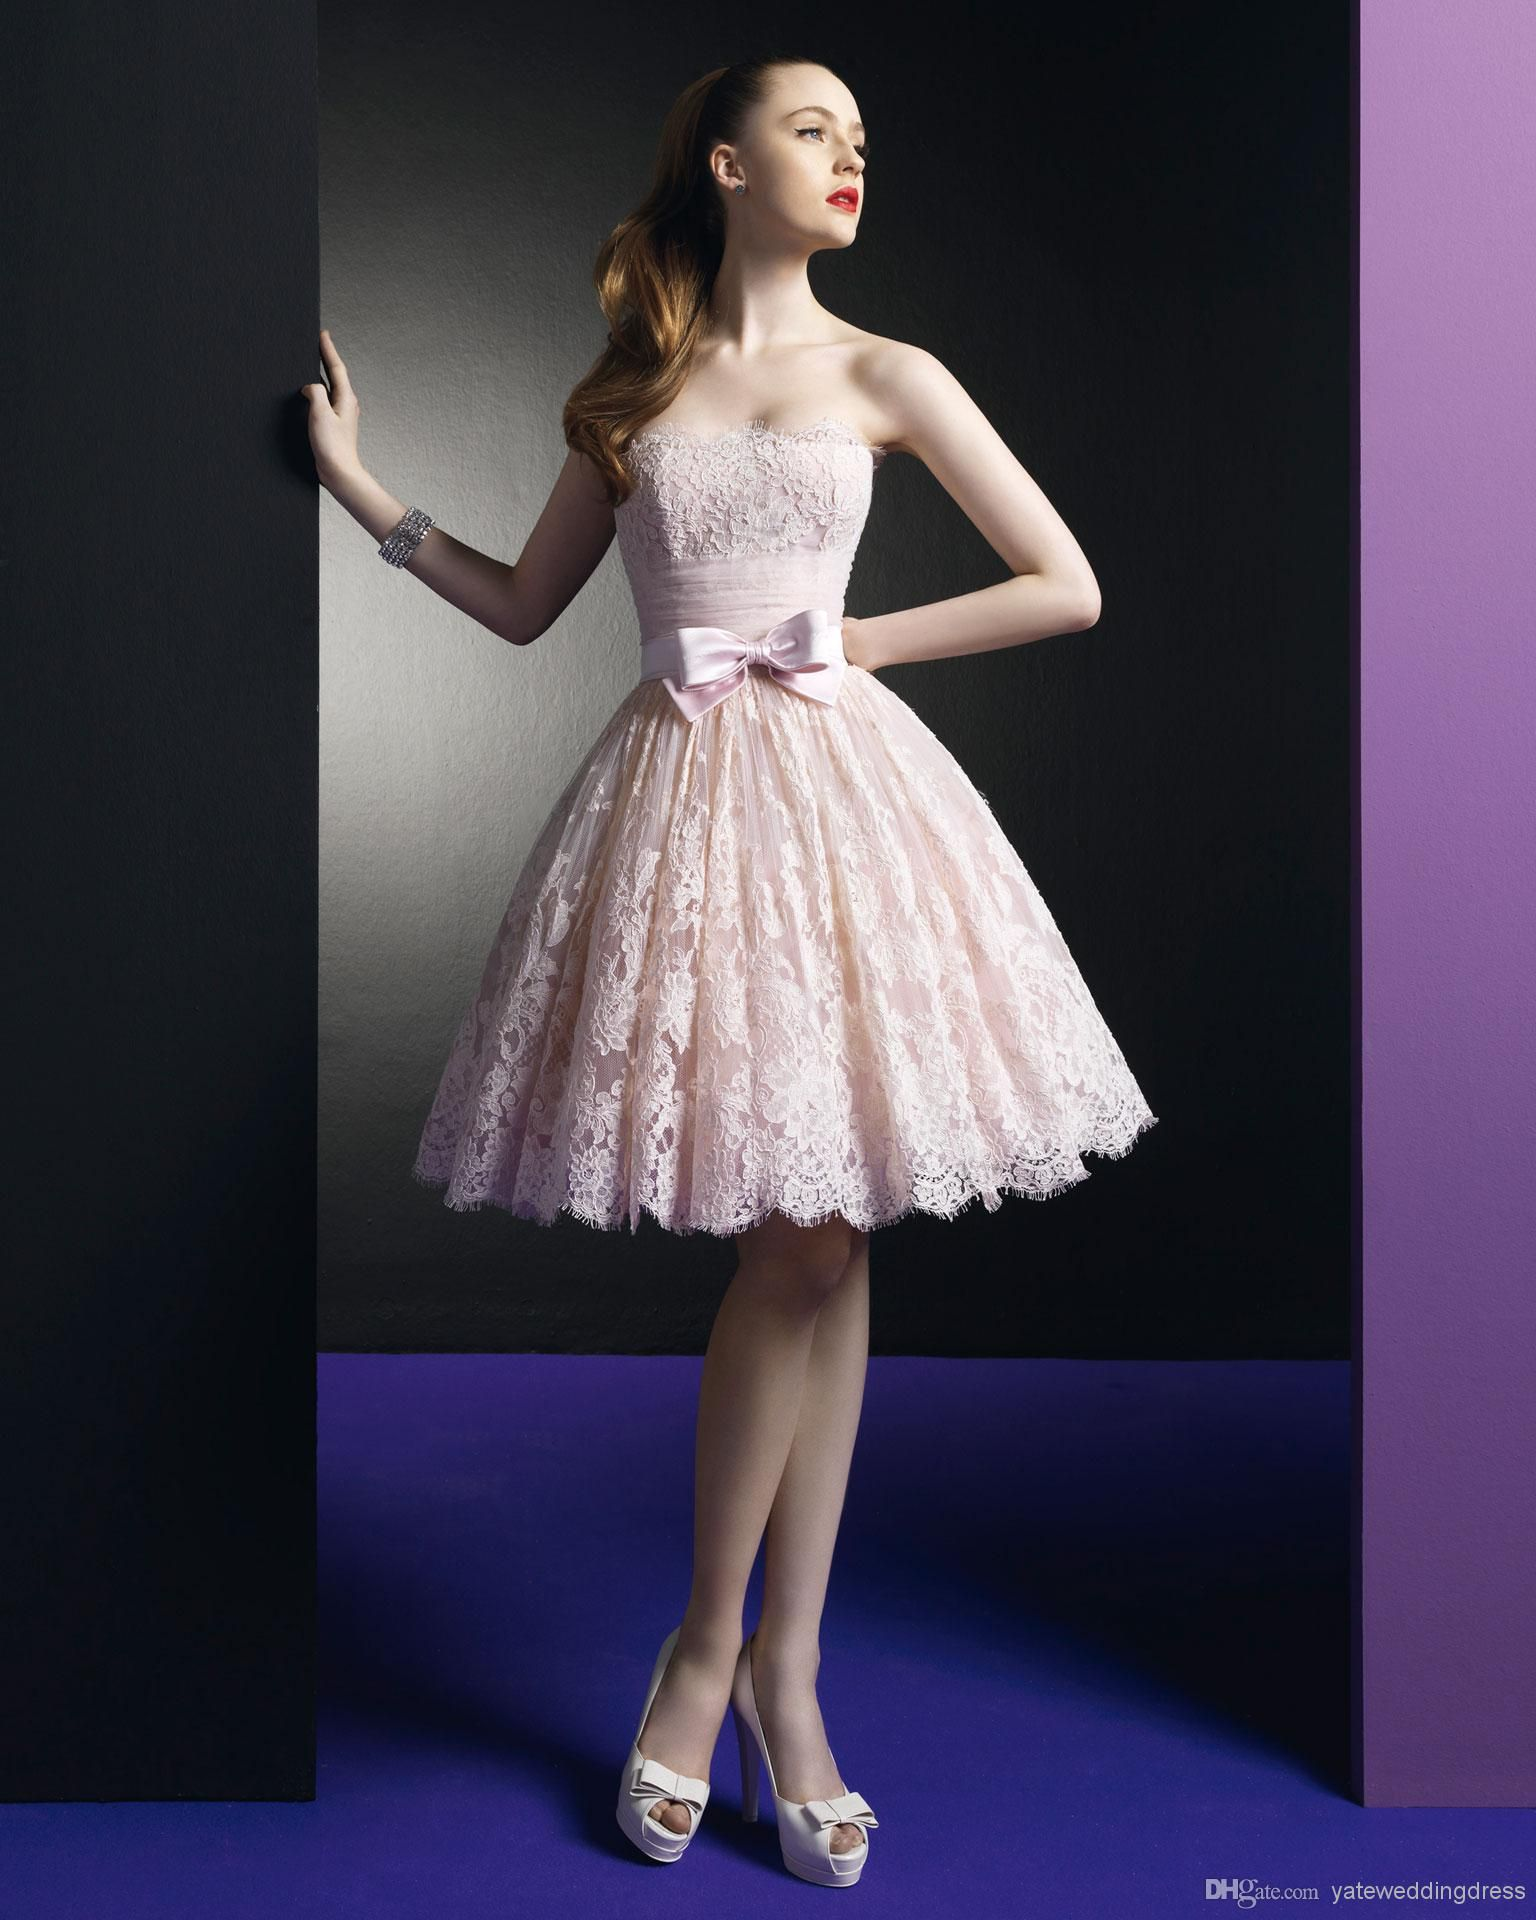 Wholesale Cocktail Dresses - Buy 2014 Sexy Zuhair Murad Dress Short Prom Dresses Pink Lace Cocktail Dresses Party With Strapless Neckline An...